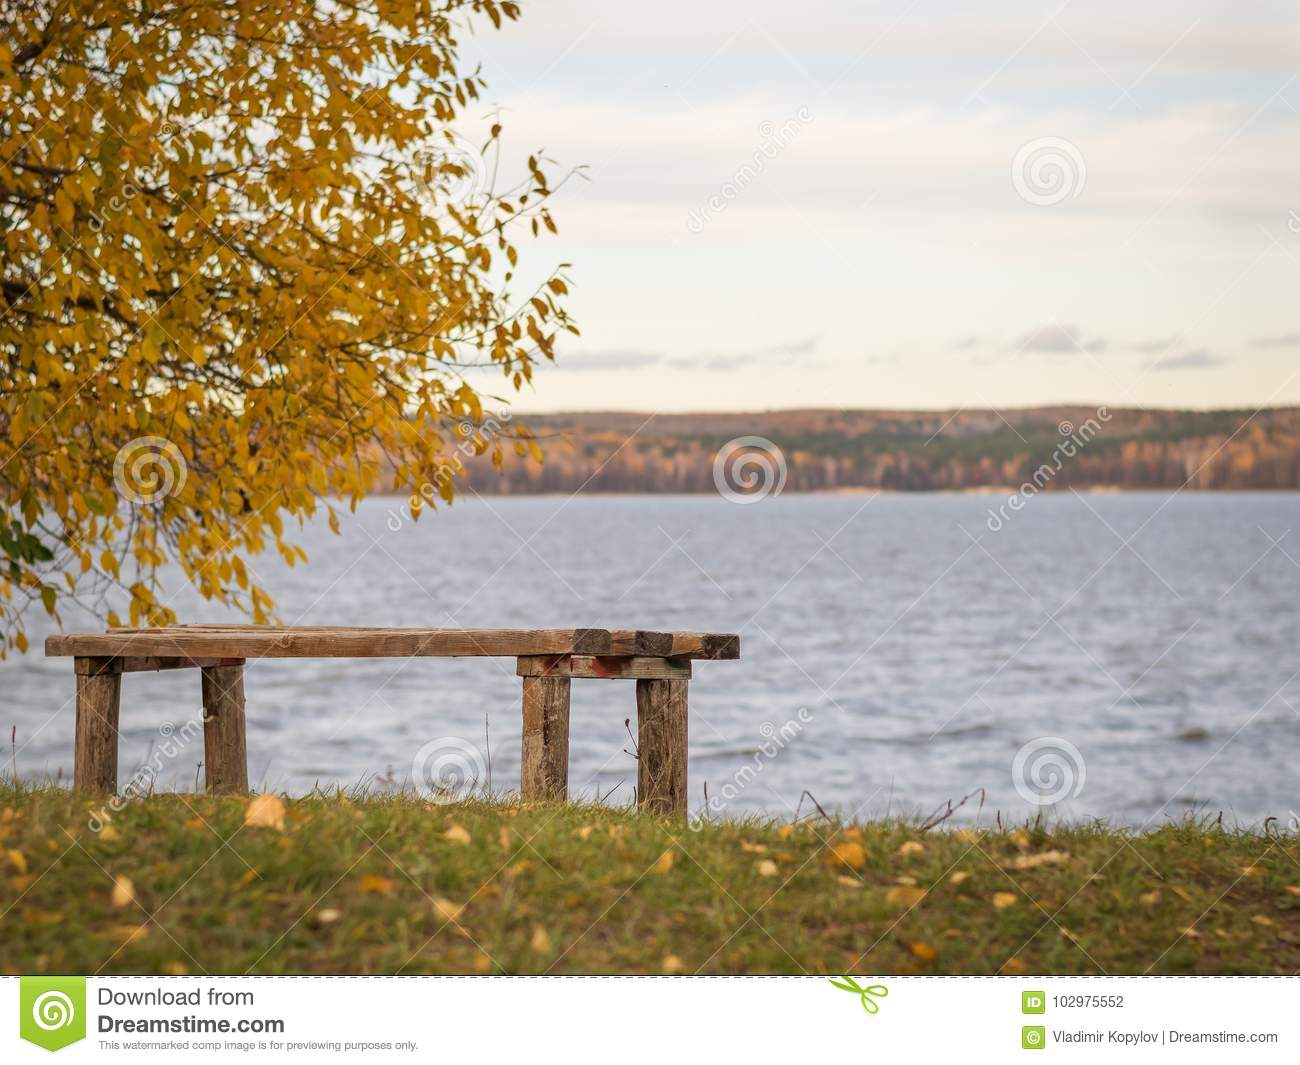 Wooden Bench In Autumn Park On The Shore Of The Lake Stock